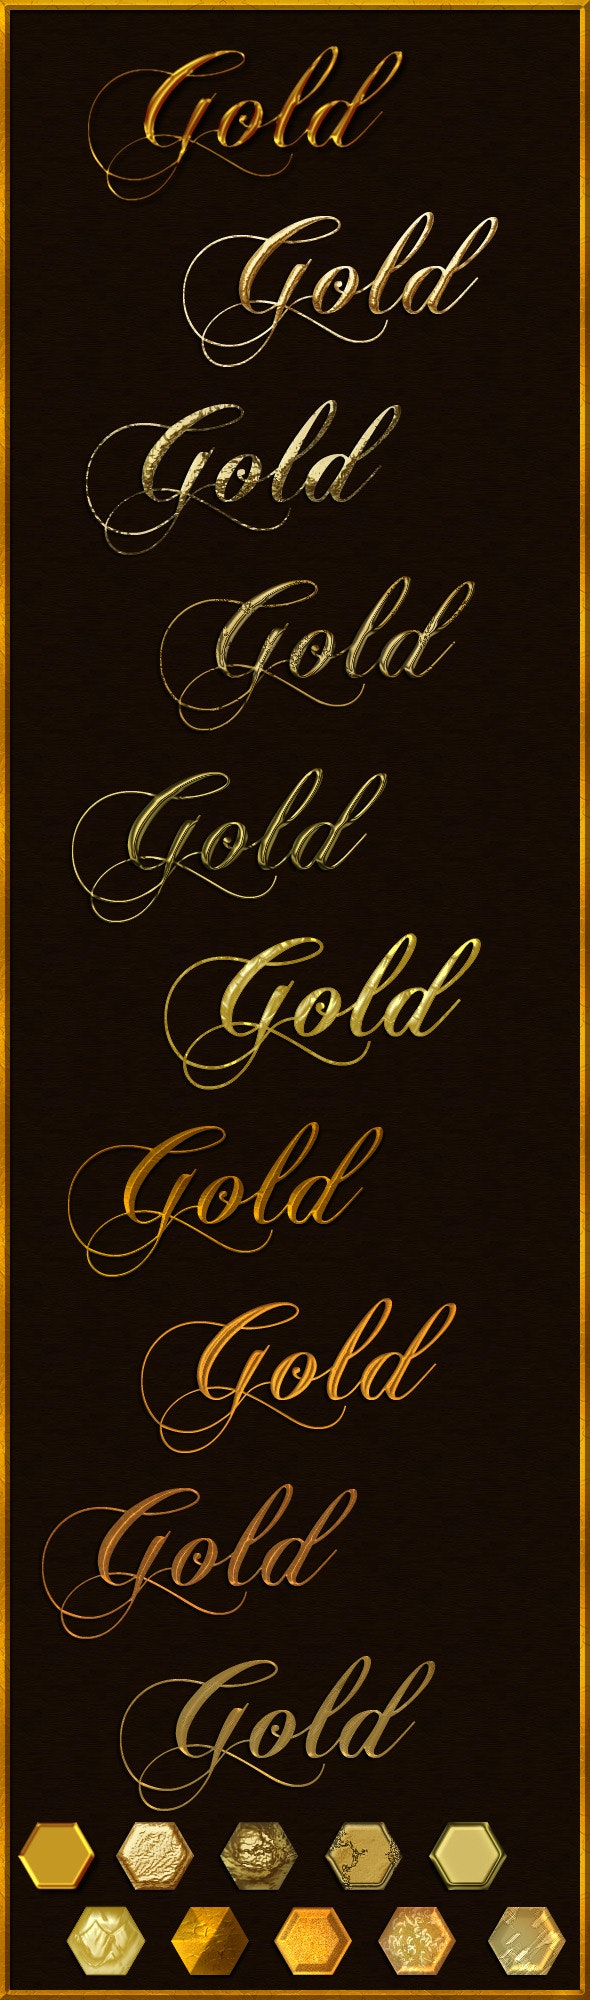 Elegant Gold - 10 layer styles - Photoshop Add-ons